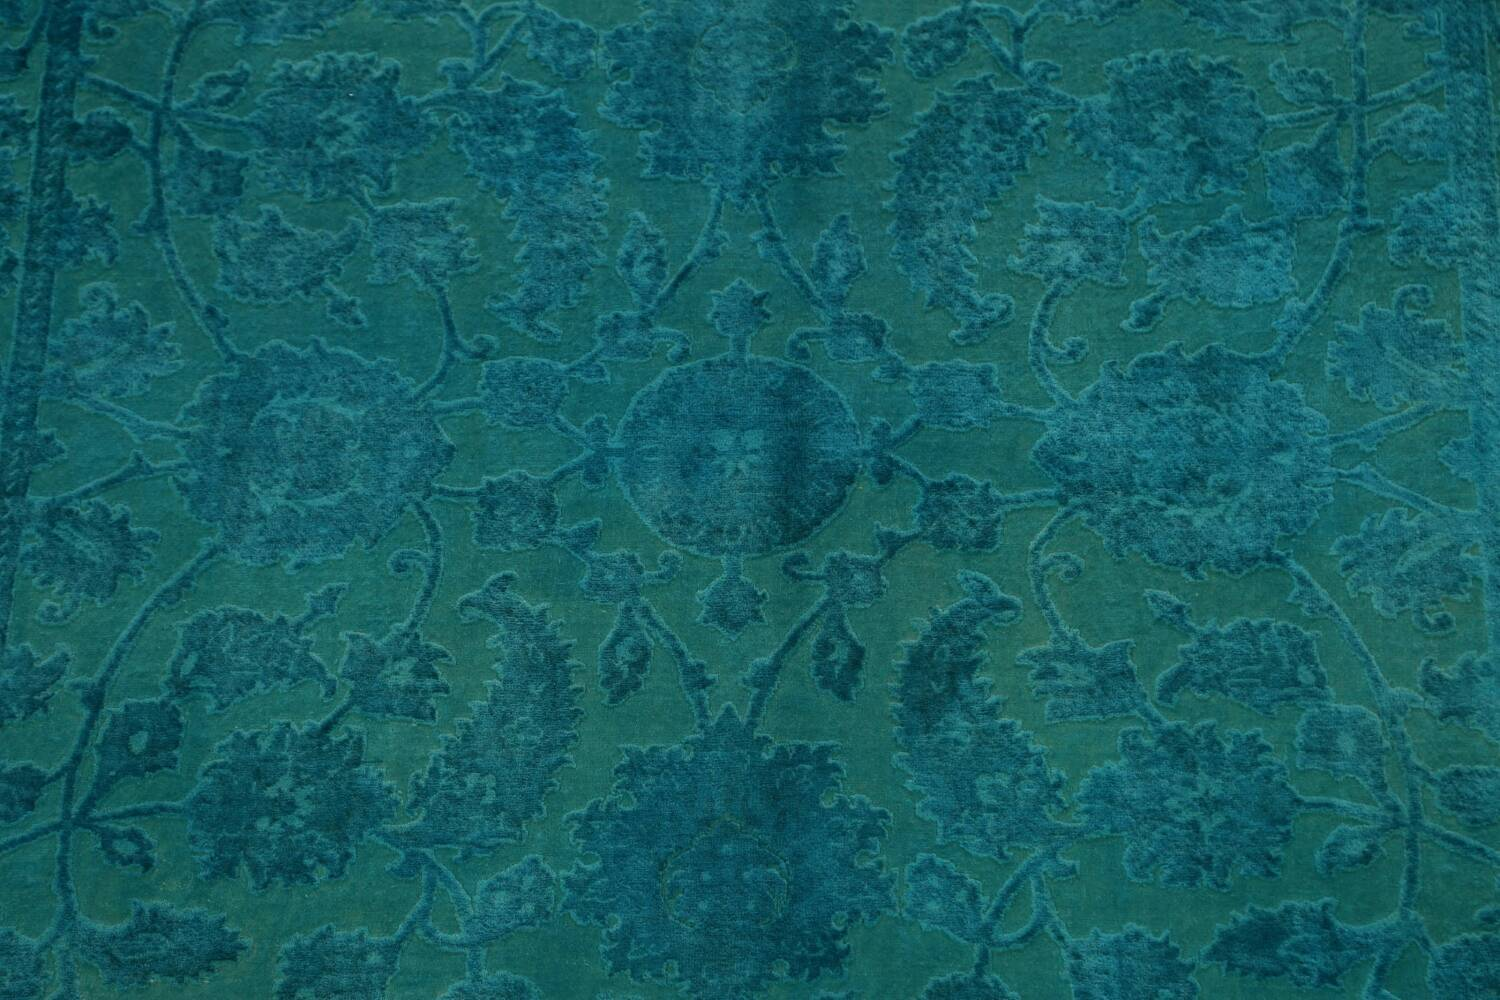 Vegetable Dye Carved Aqua Oushak Chobi Oriental Area Rug 6x9 image 4